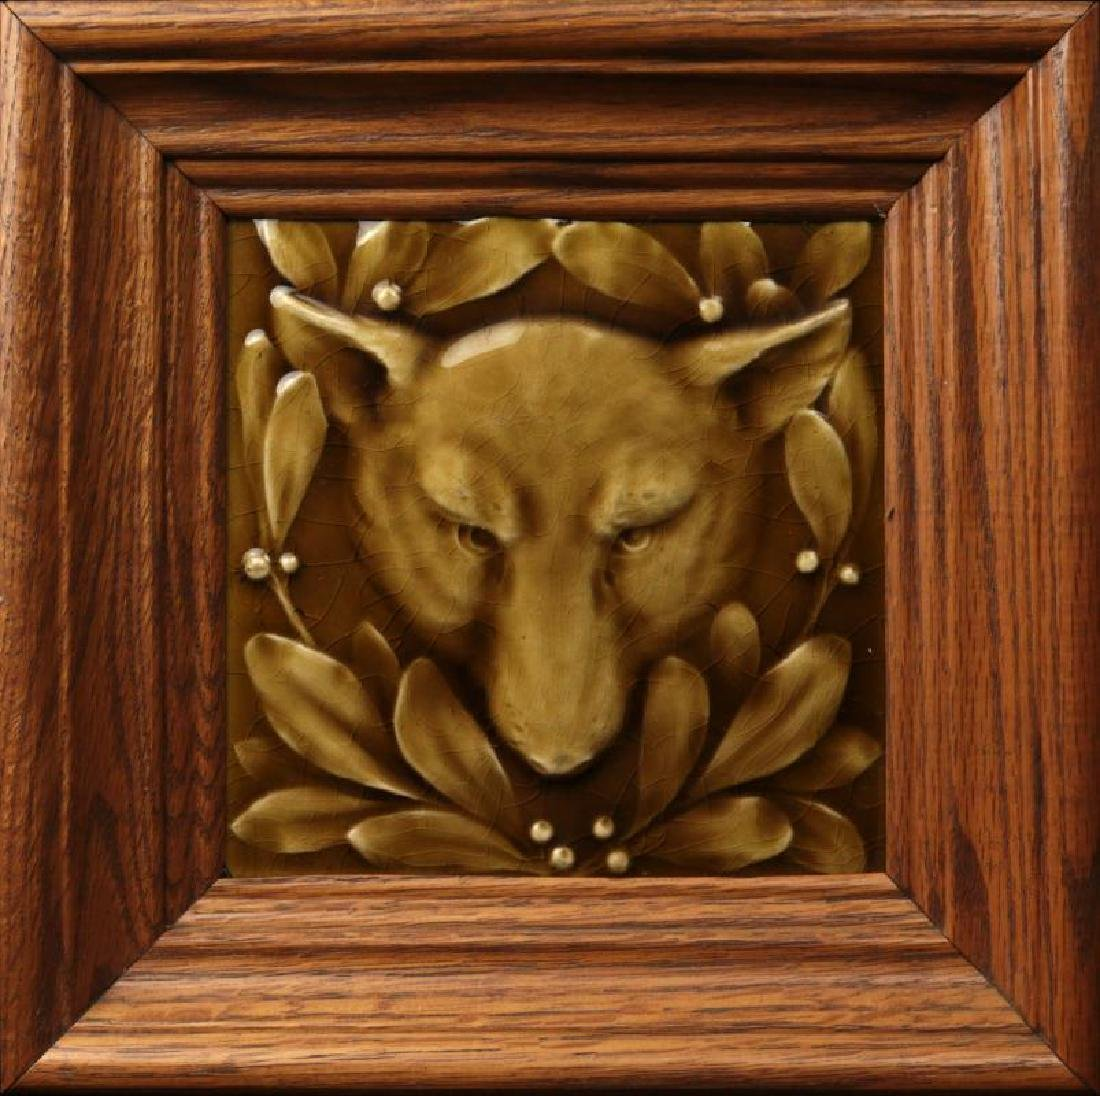 A GOOD VICTORIAN TILE, THE PORTRAIT OF A WOLF